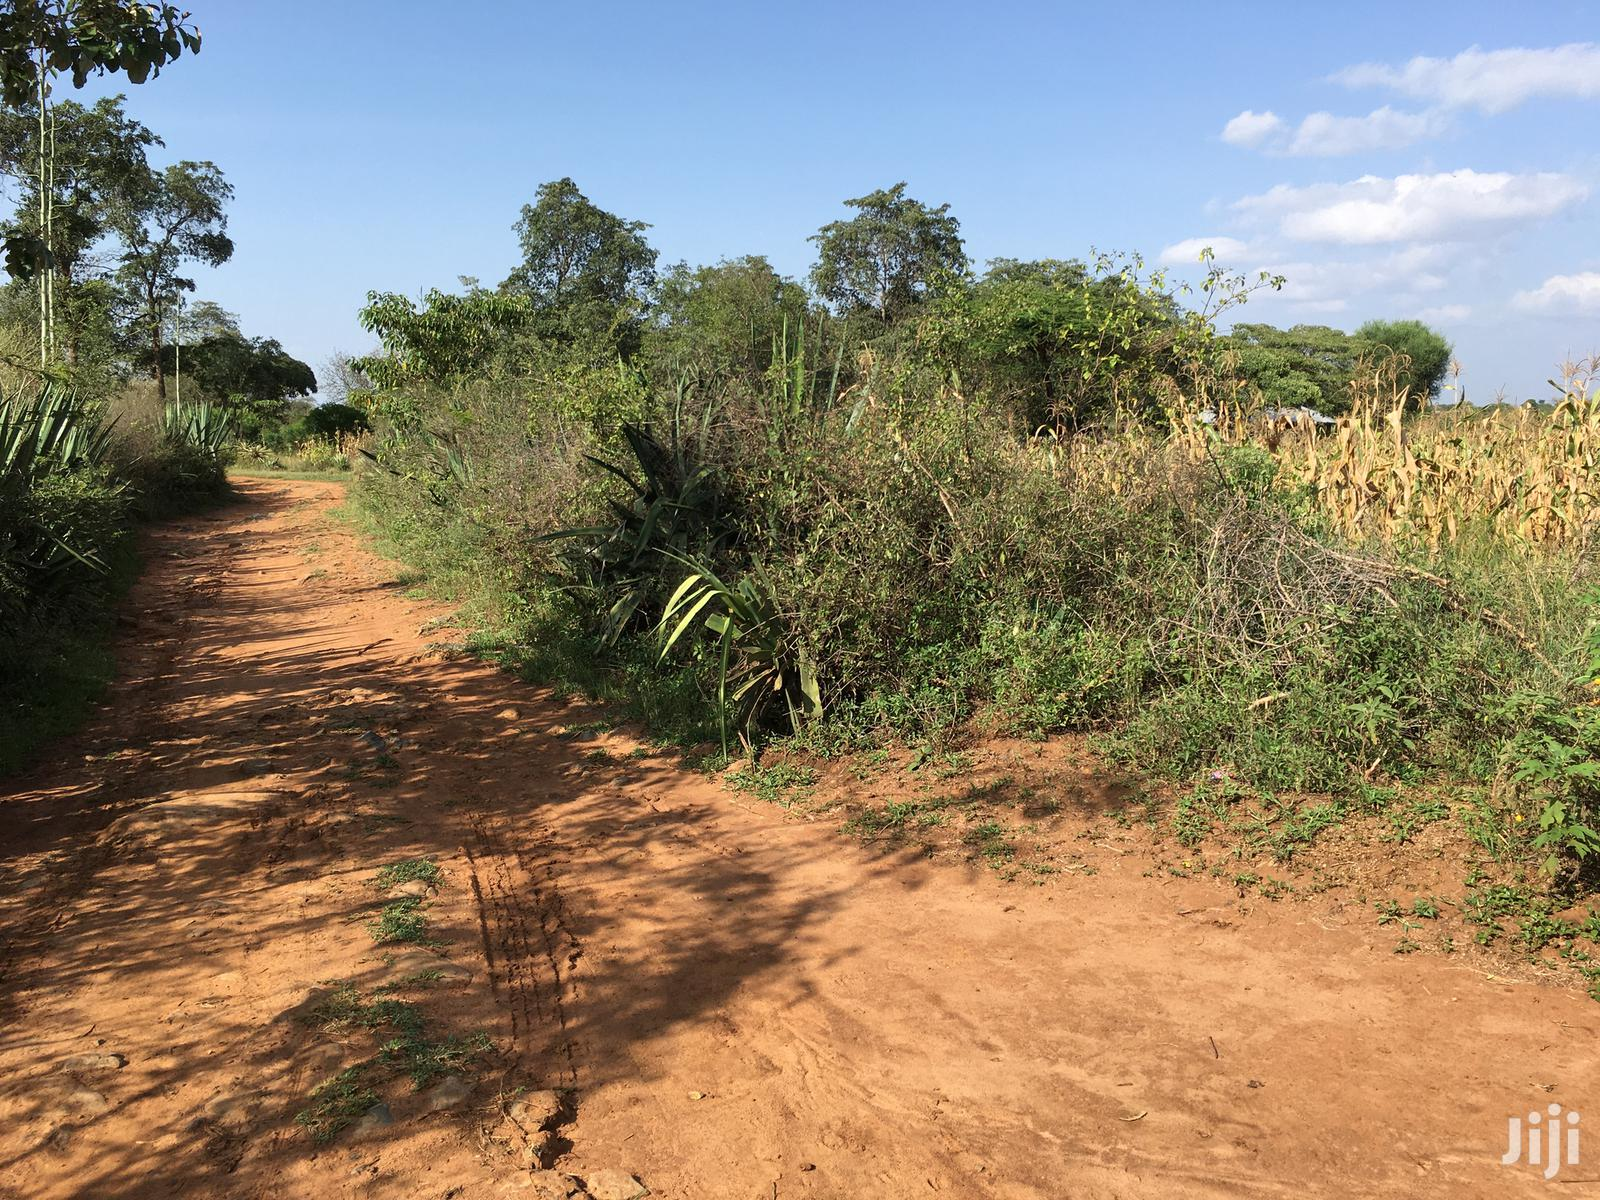 11-Eleven Acres for Sale in Matuu | Land & Plots For Sale for sale in Matuu, Machakos, Kenya